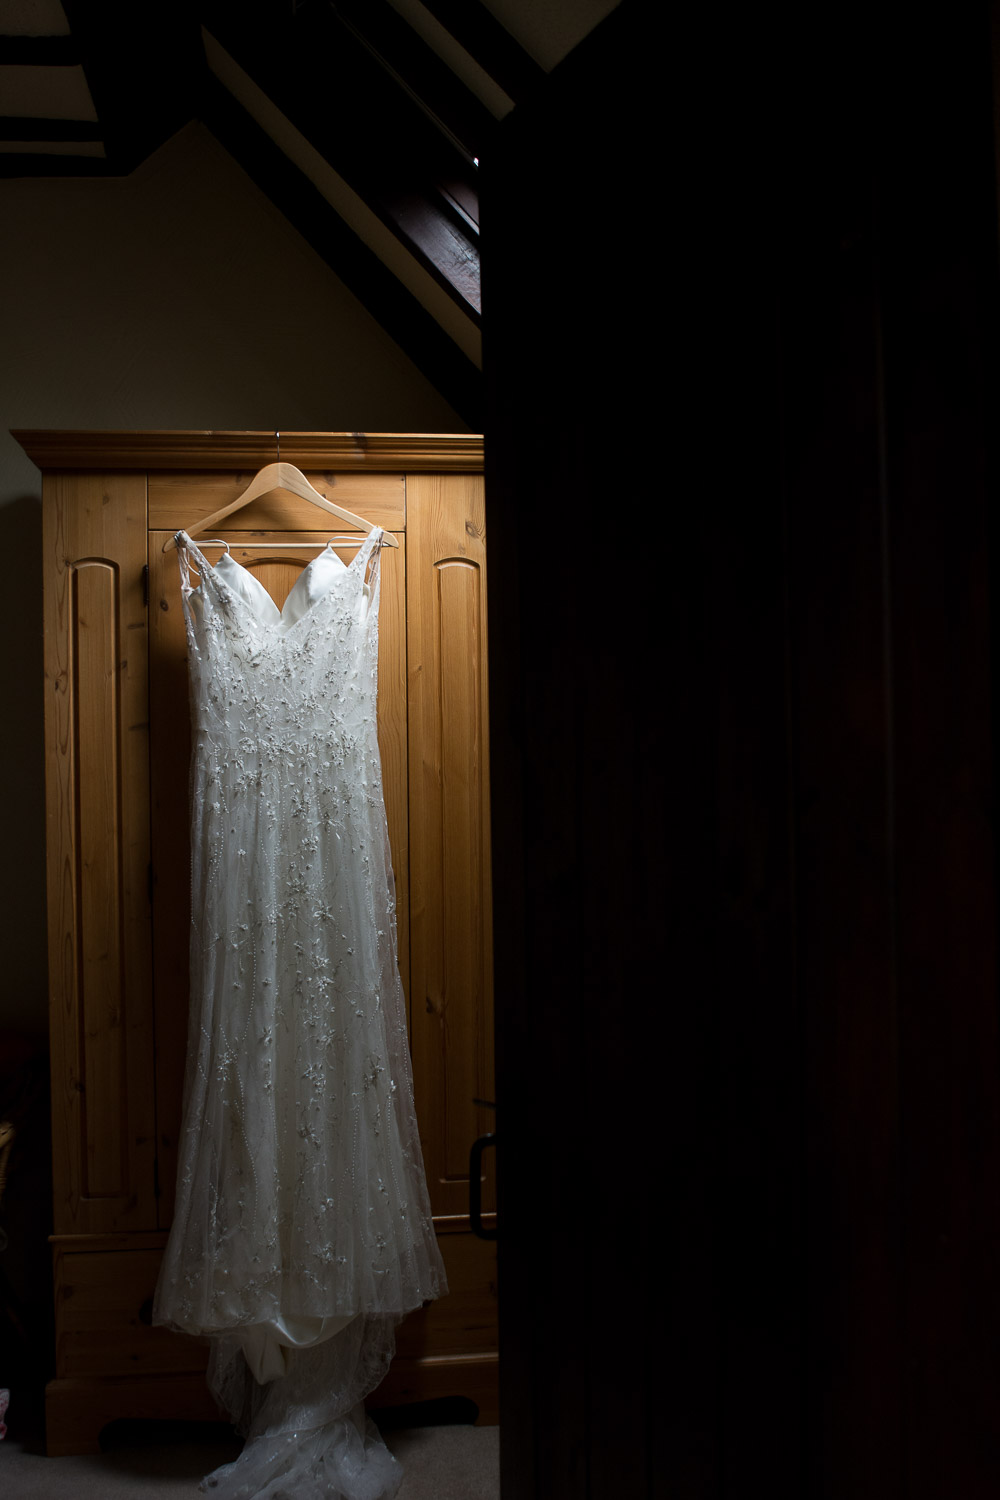 bohemian style dress hanging on the wardrobe at wedding yurts wedding in leicestershire